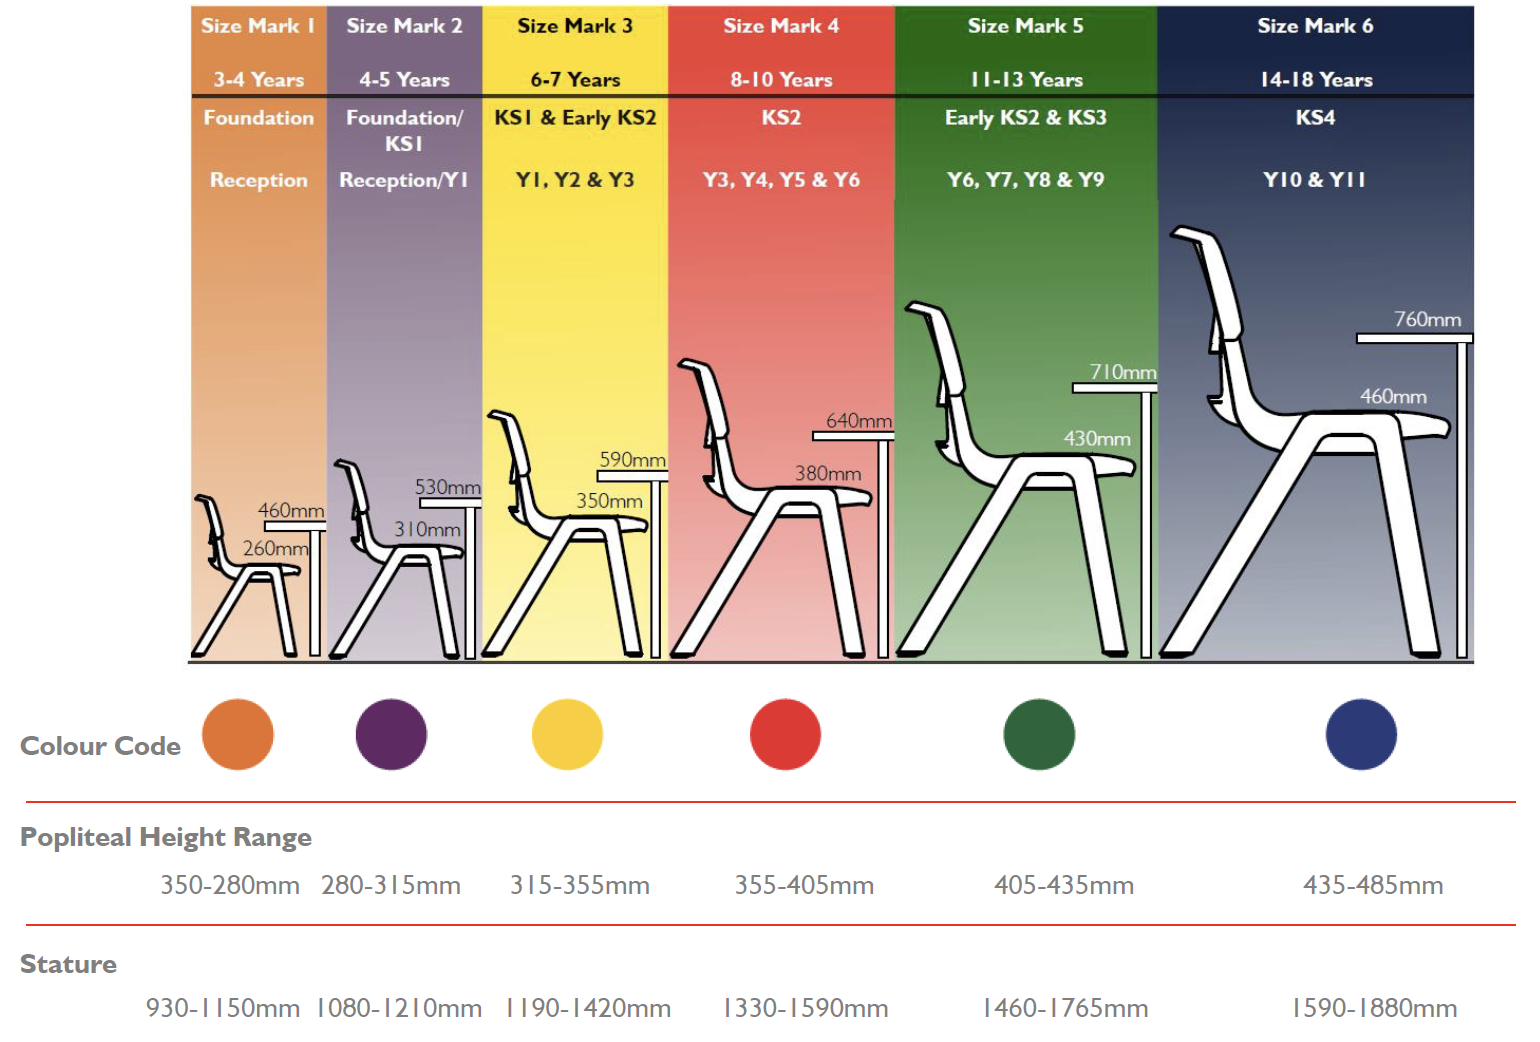 Chair-table-sizing-guide.jpg